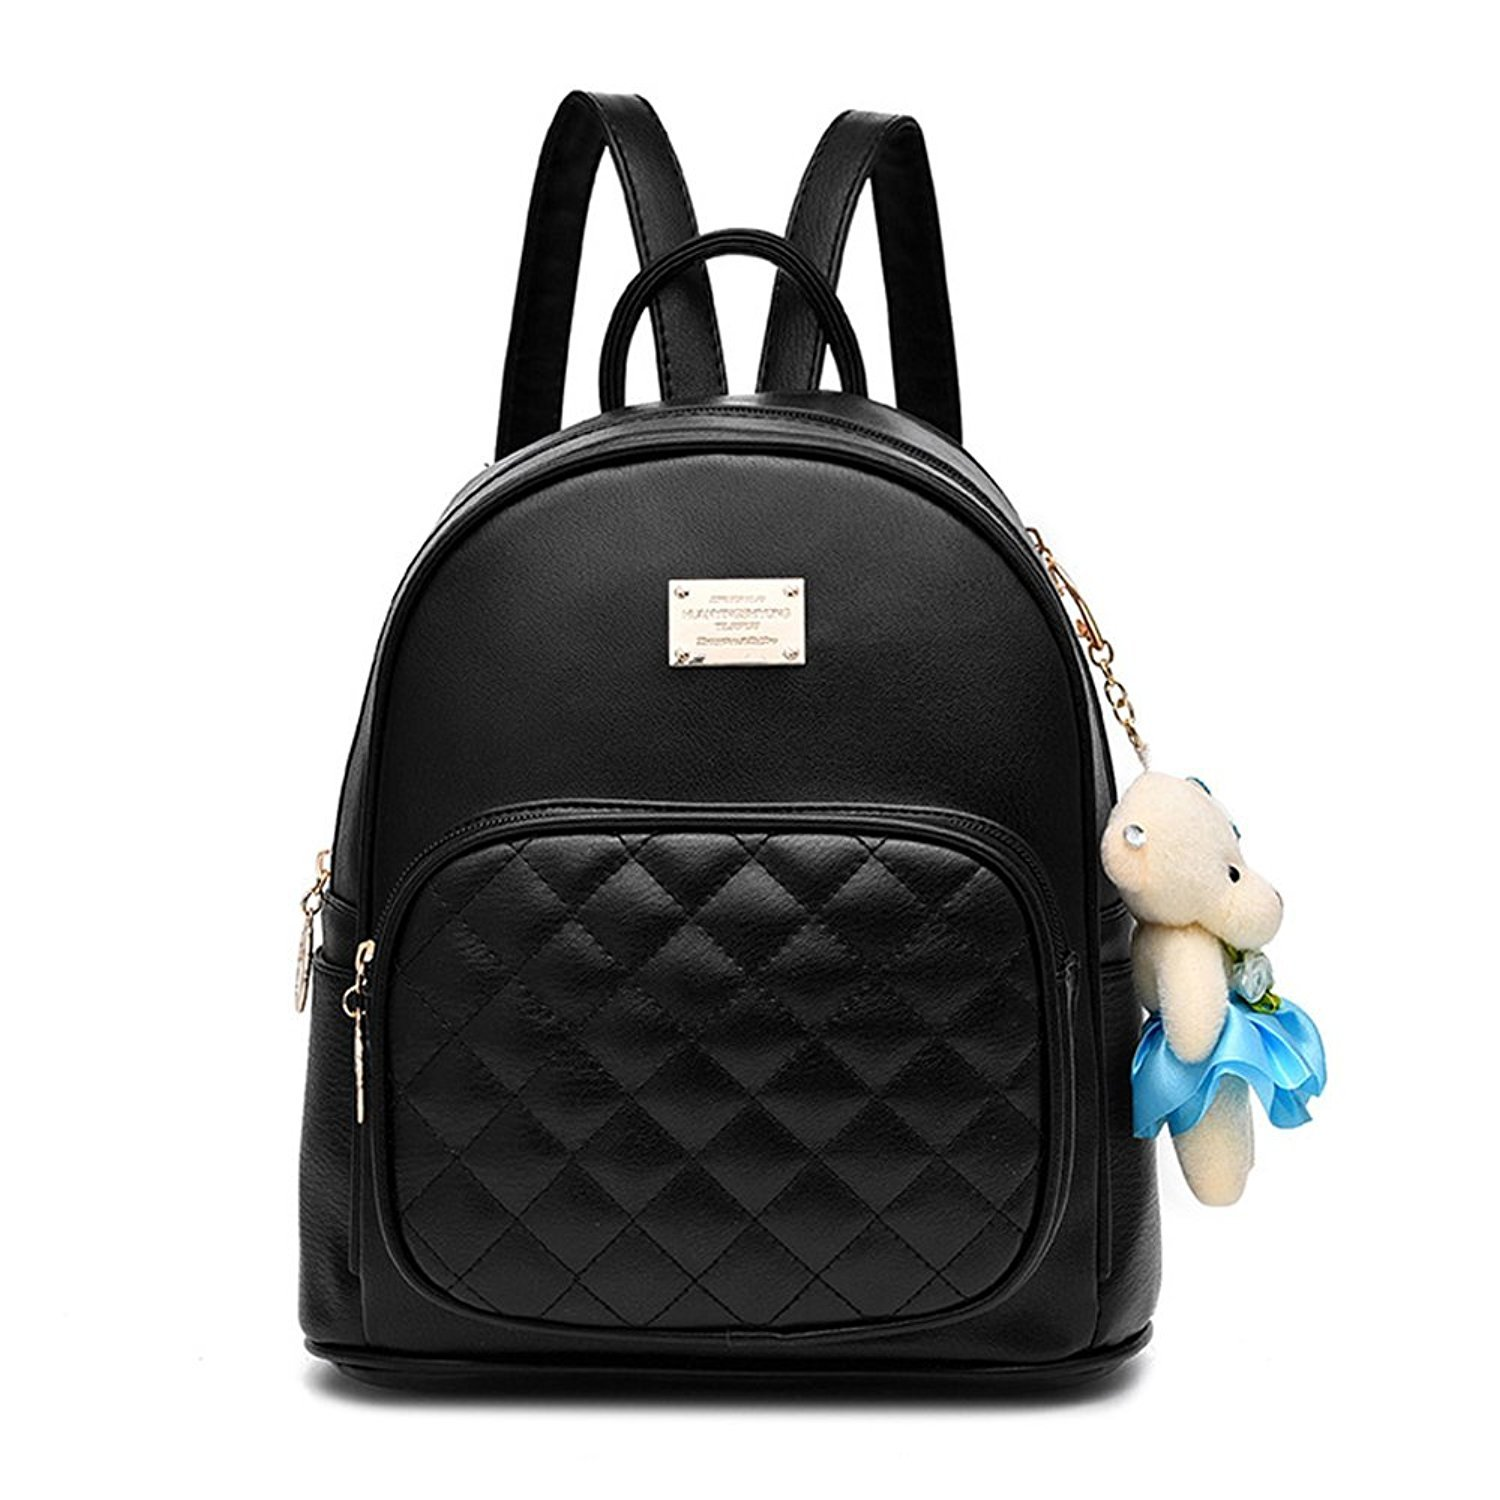 ef86b68180 Amazon.com  BAG WIZARD Leather Backpack Purse Satchel School Bags Casual  Travel Daypacks for Womens  Toys   Games